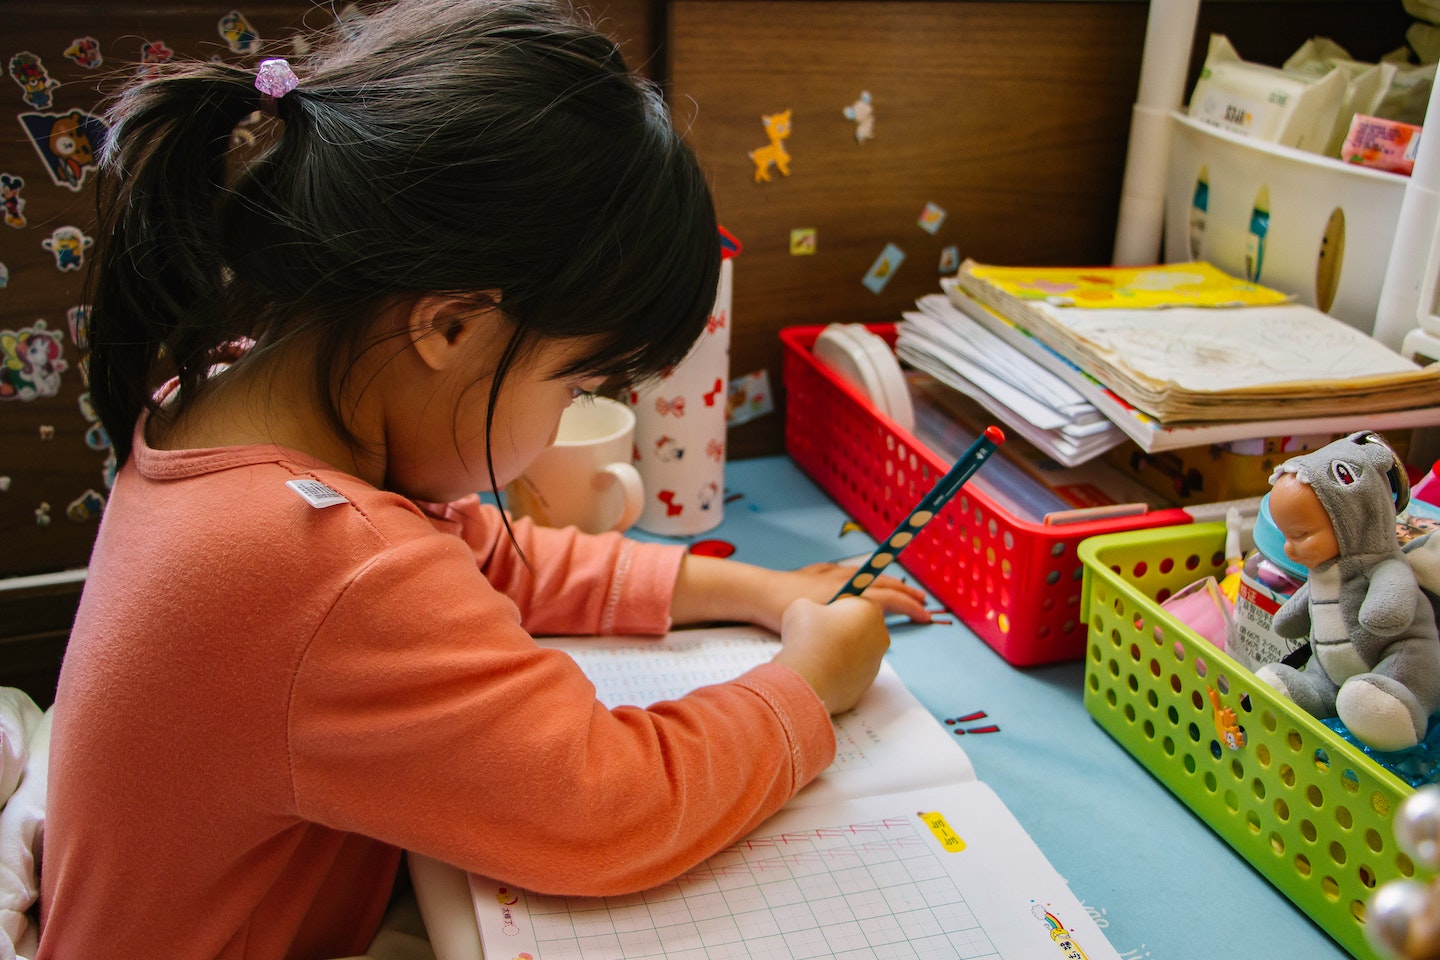 Young girl with black pony tail and orange shirt completing worksheet in school